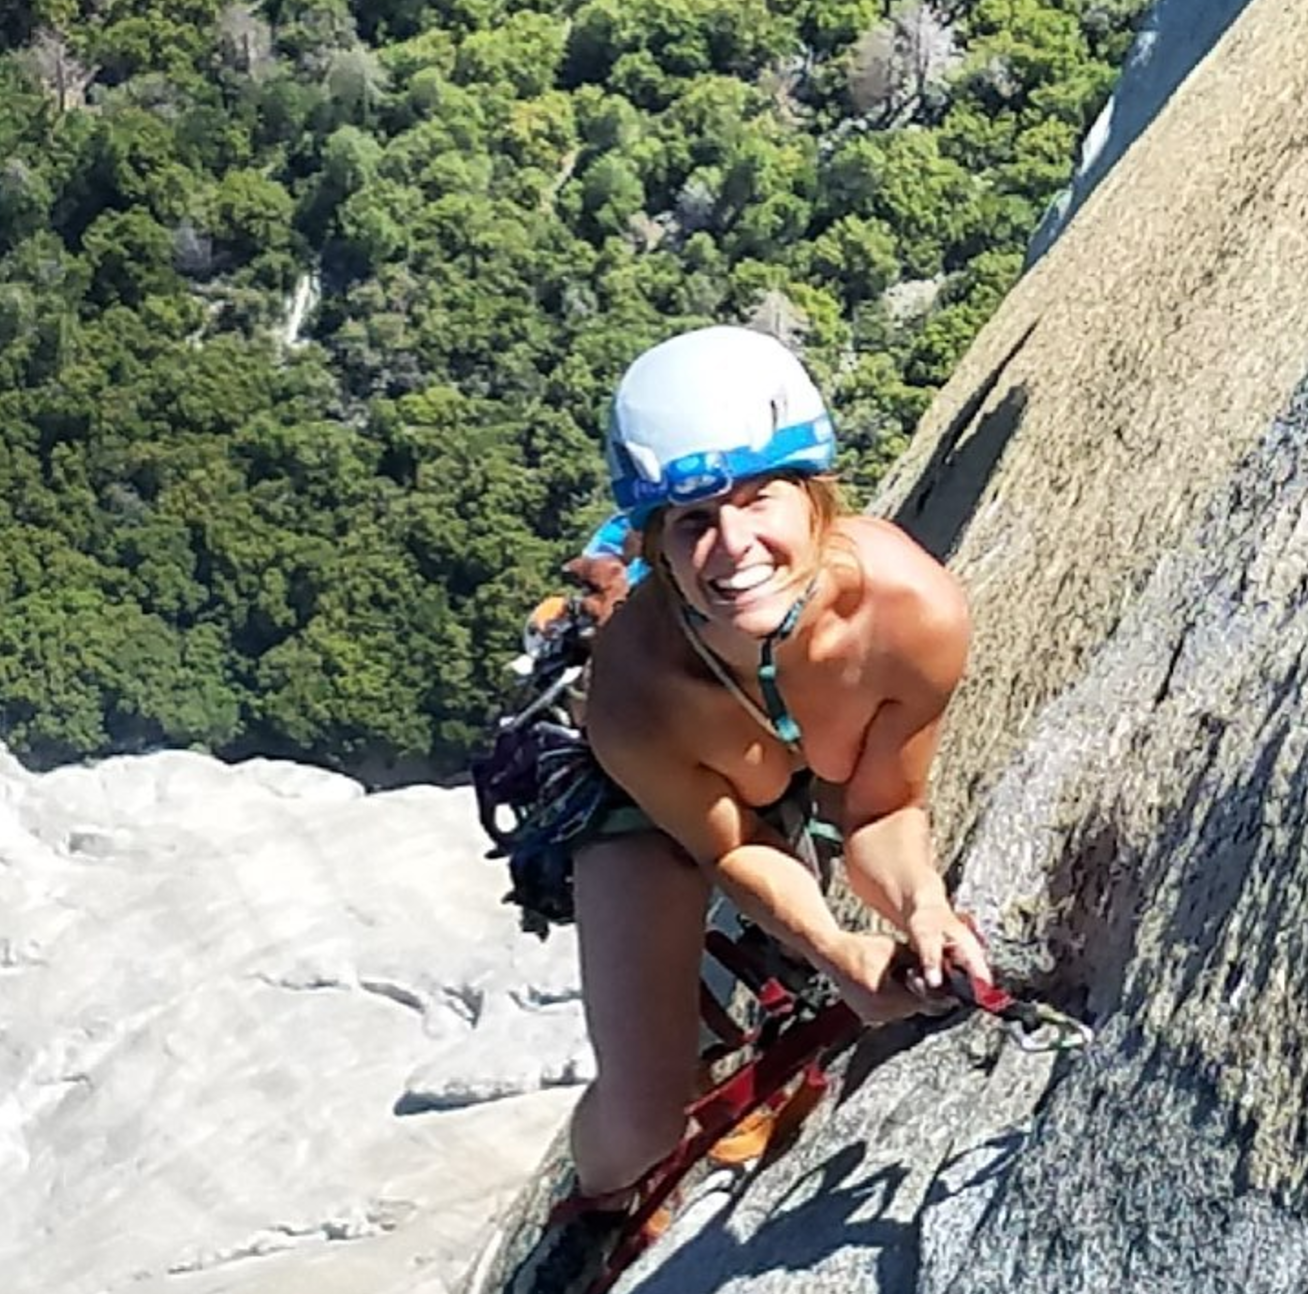 horny-couple-rock-climbing-women-pissing-san